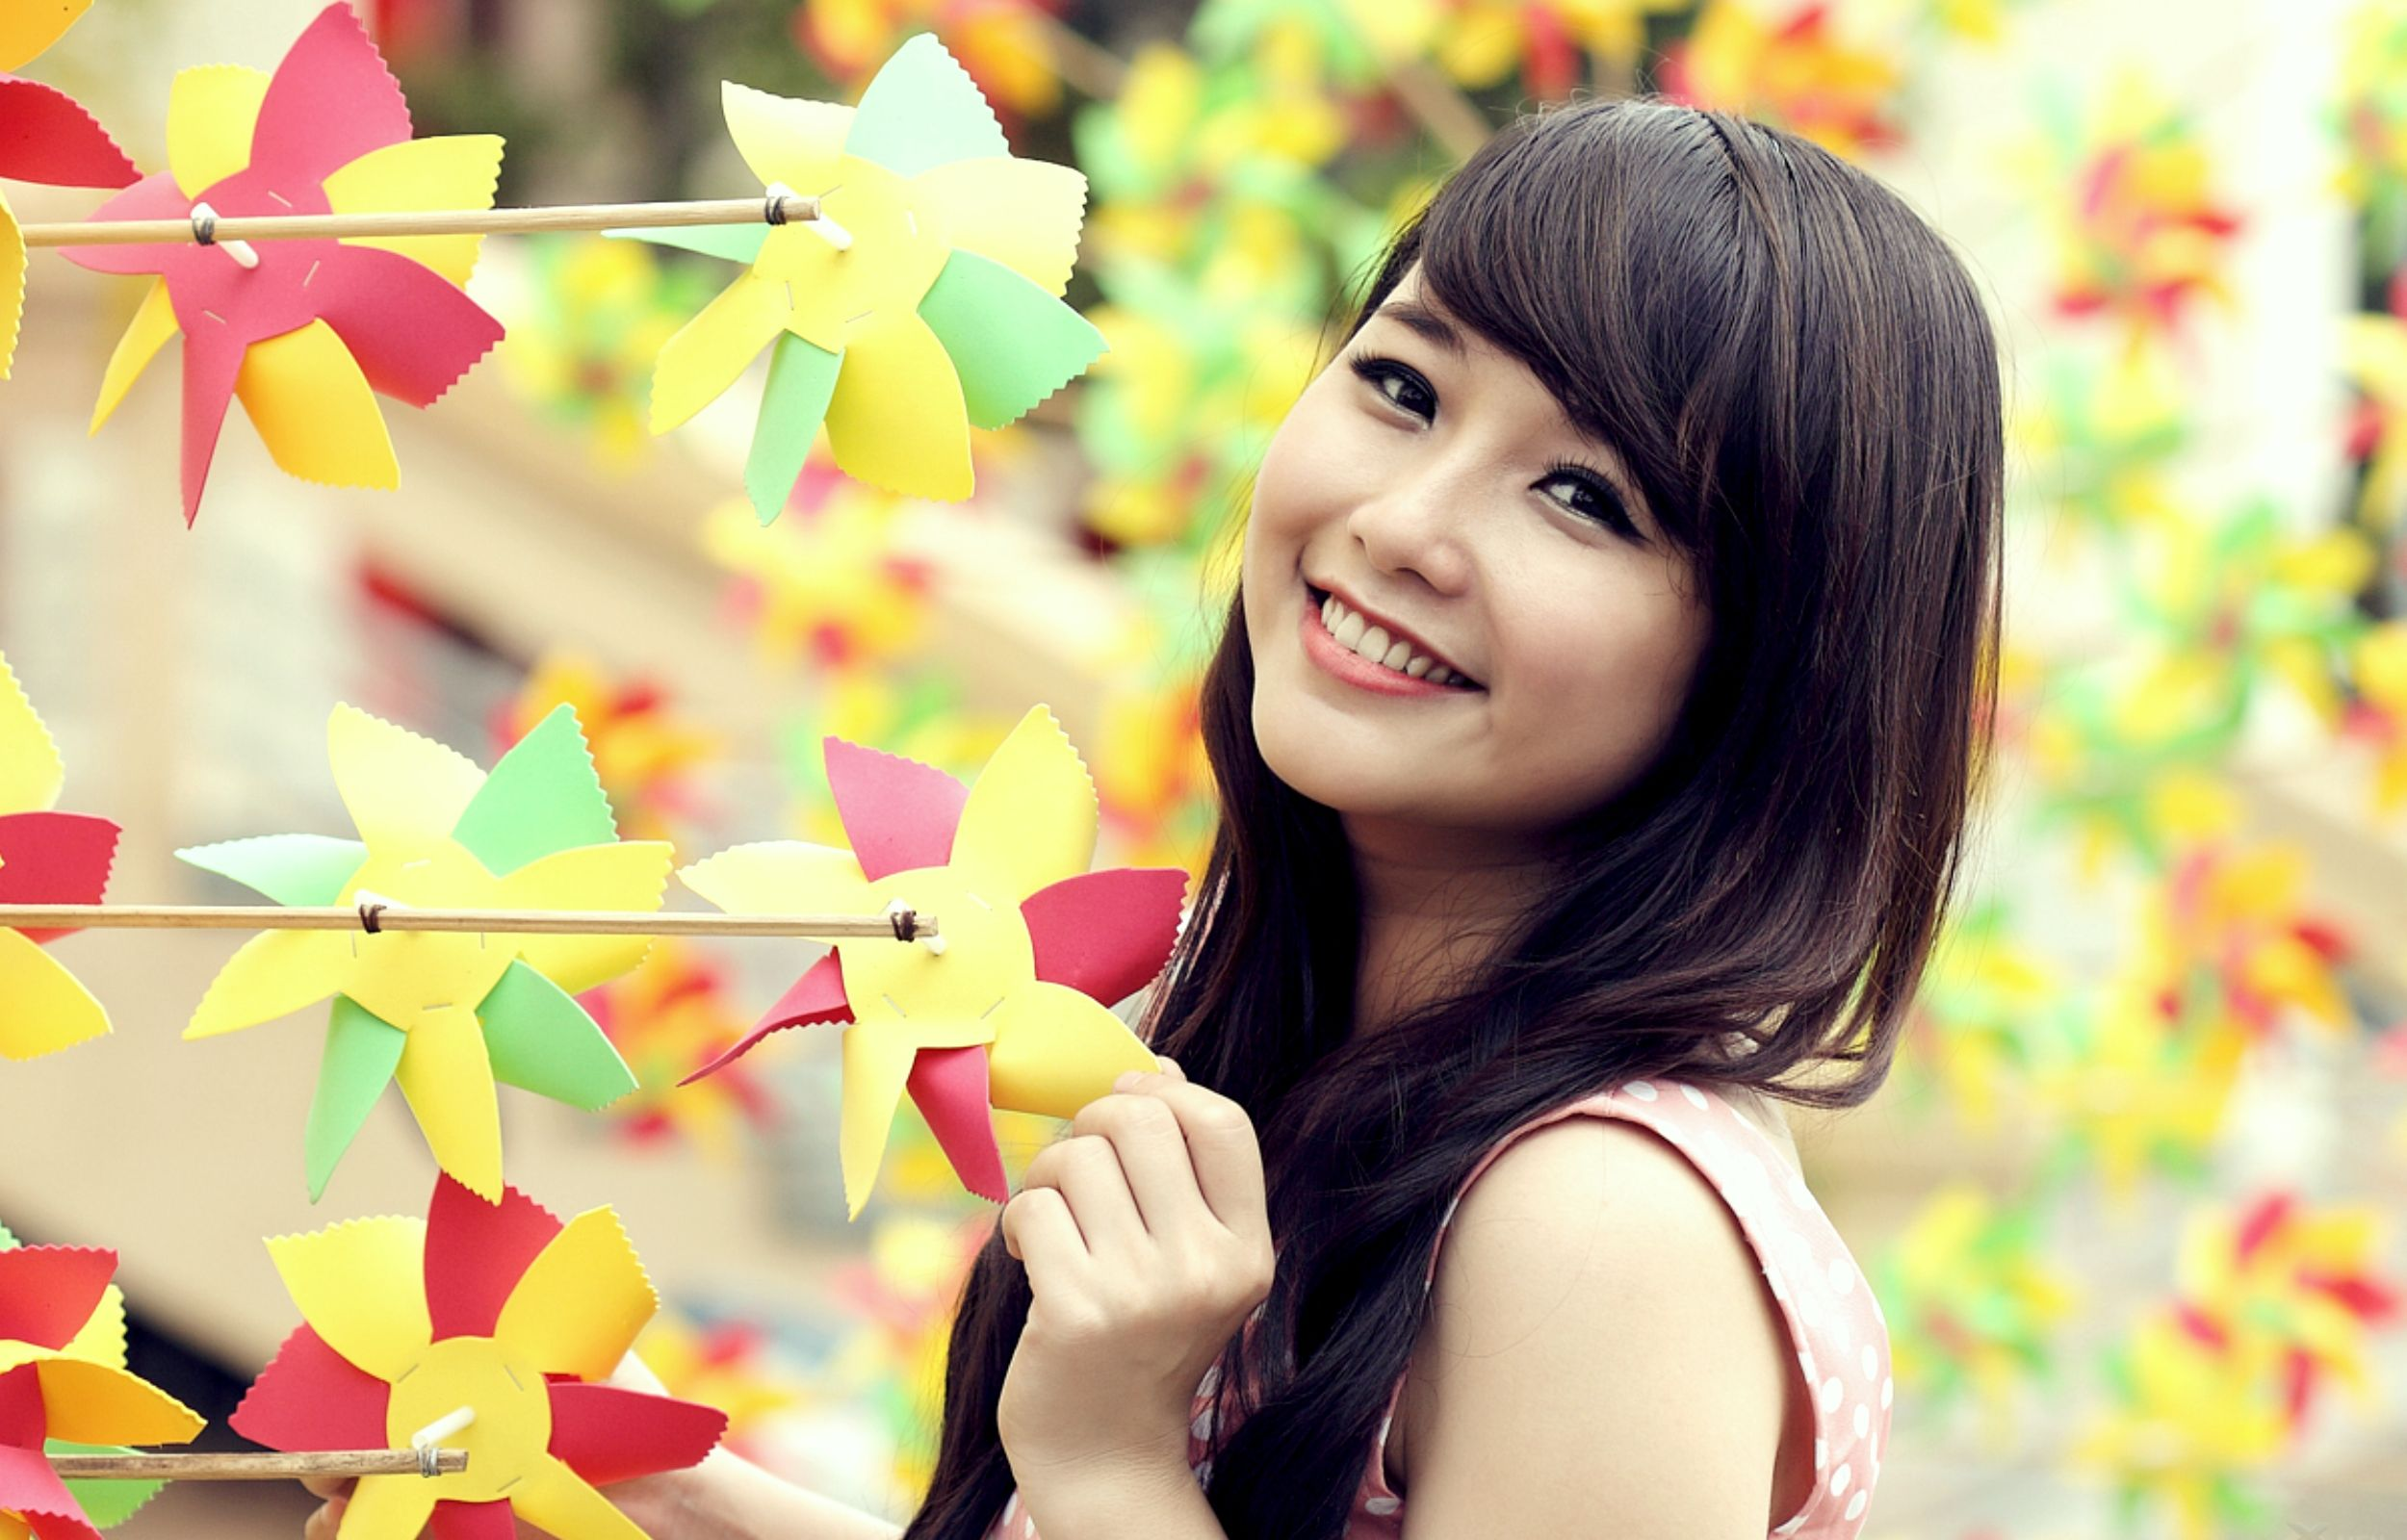 Hd wallpaper cute girl - Images Of Cute Girls Cute Girl With Smiley Face Hd Wallpapers Getcoolwallpapers Com